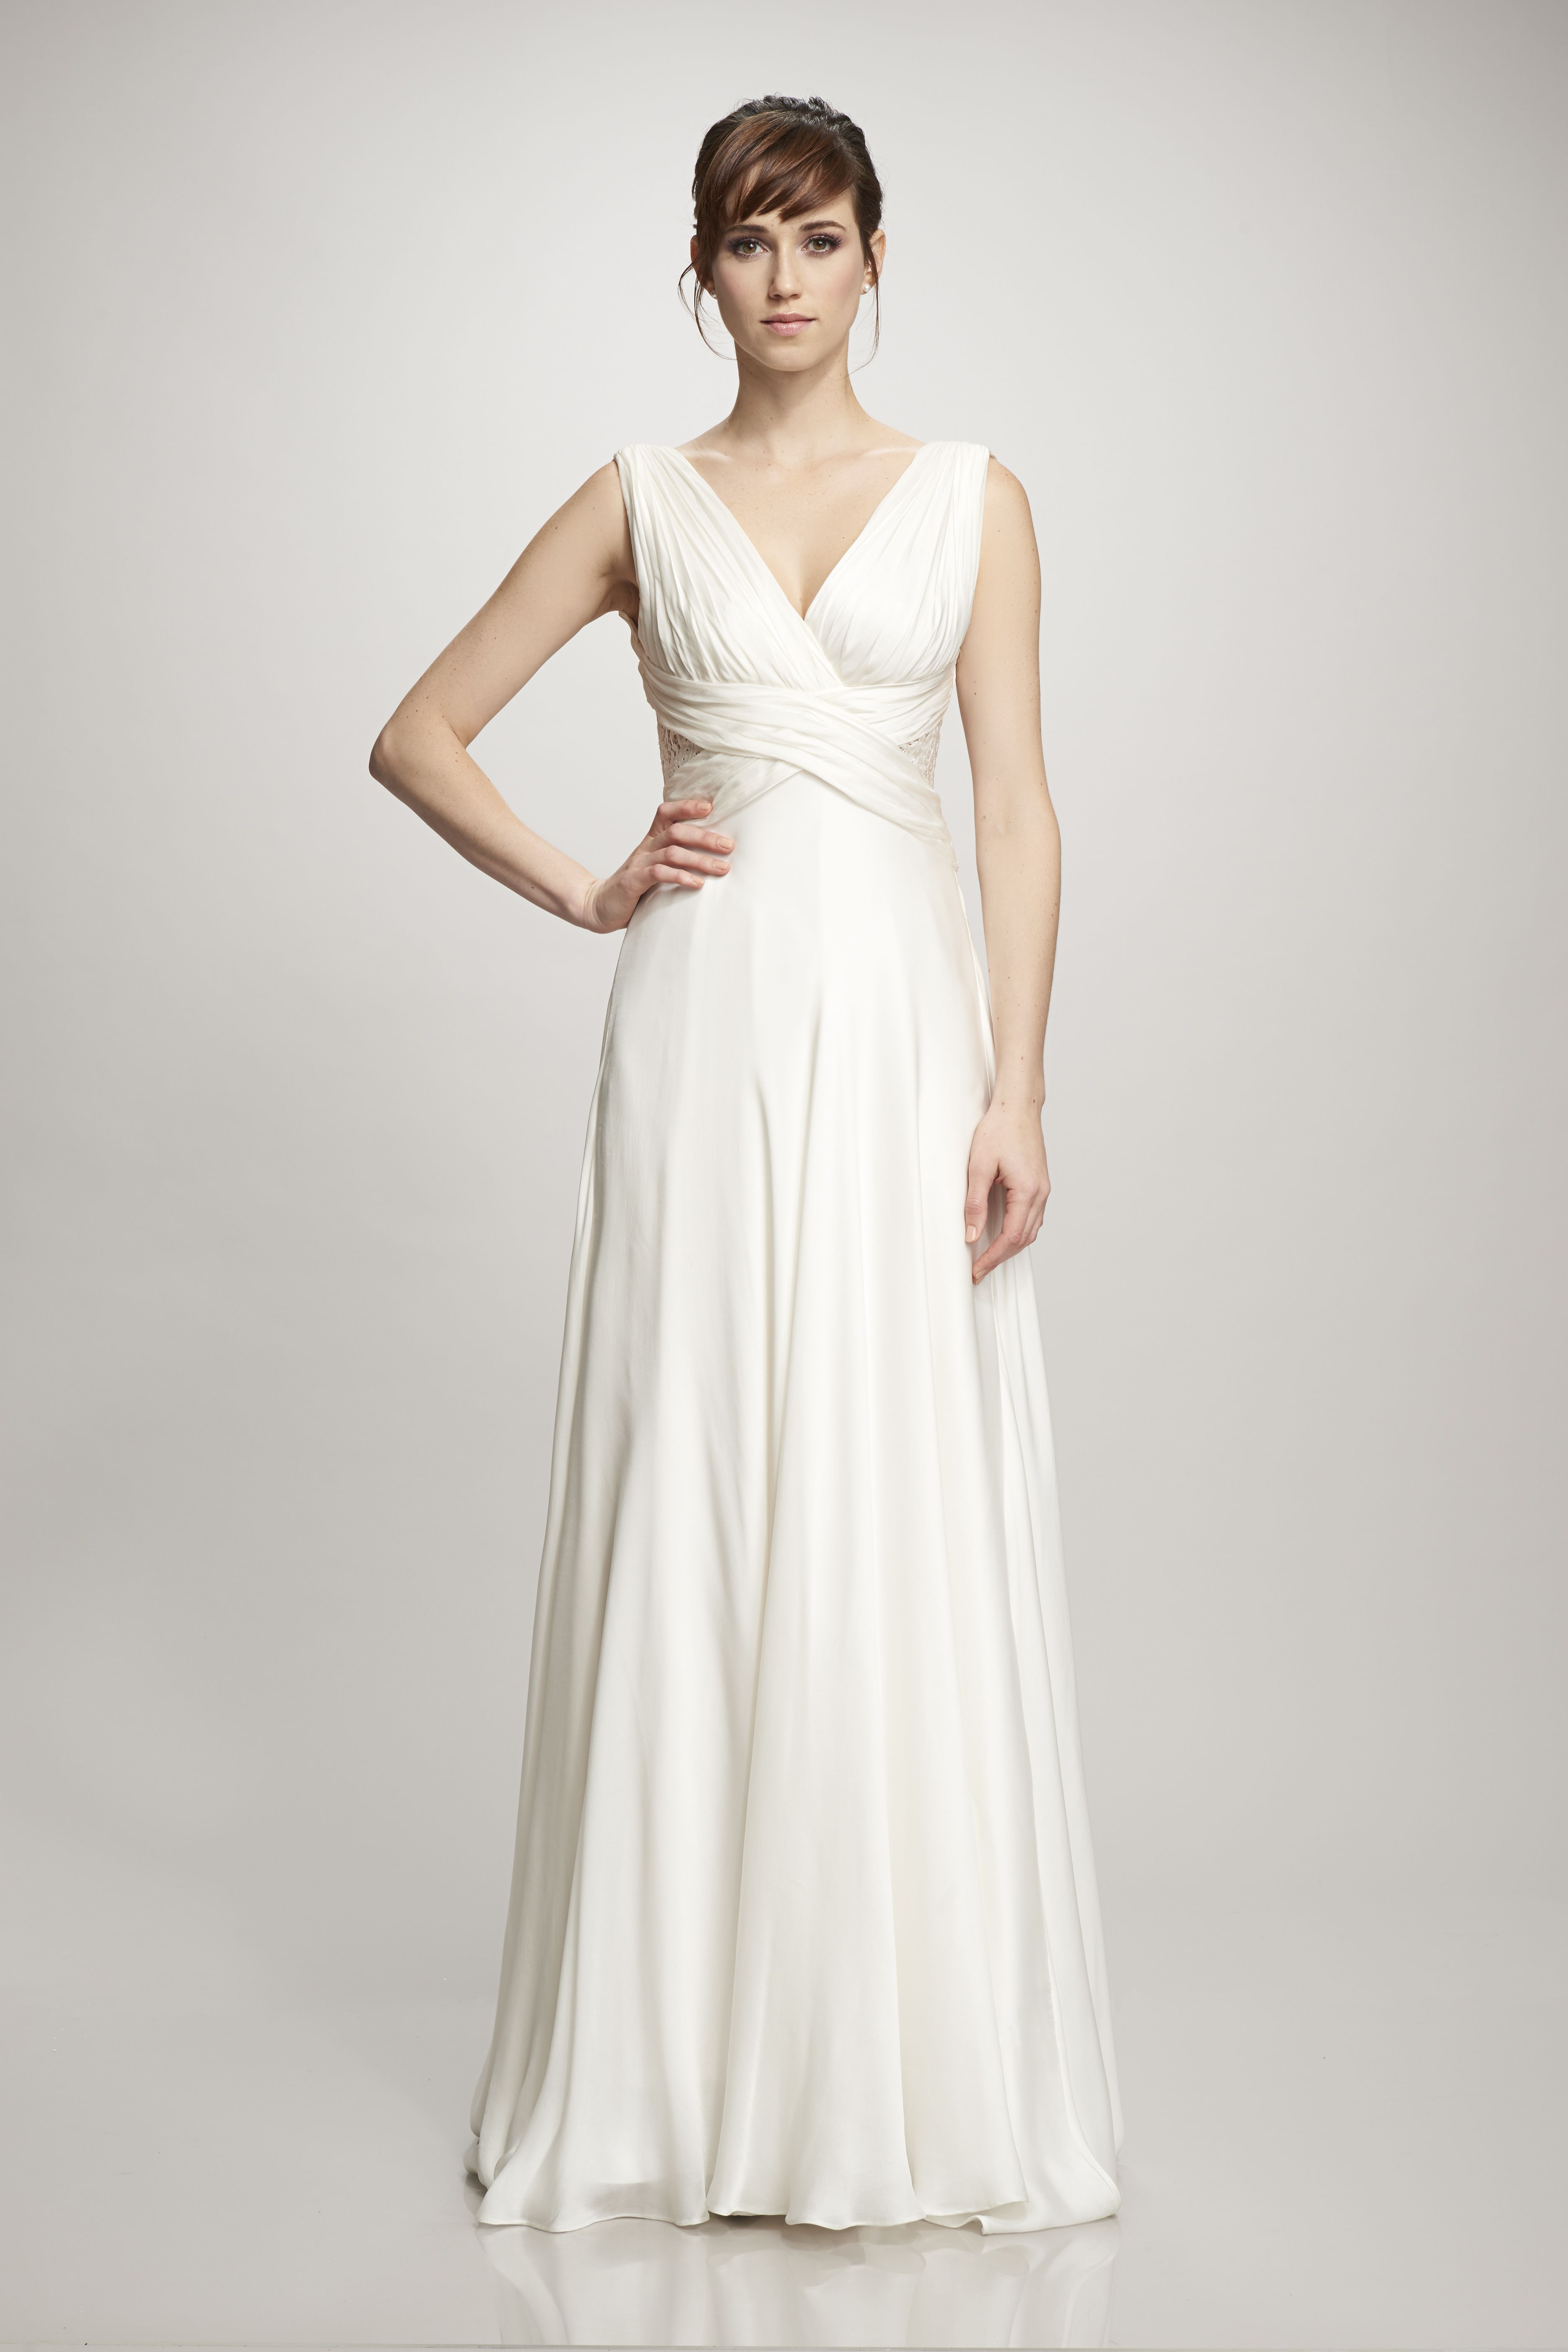 the Naomi dress by Theia available at Frock & Soul bridal boutique ...